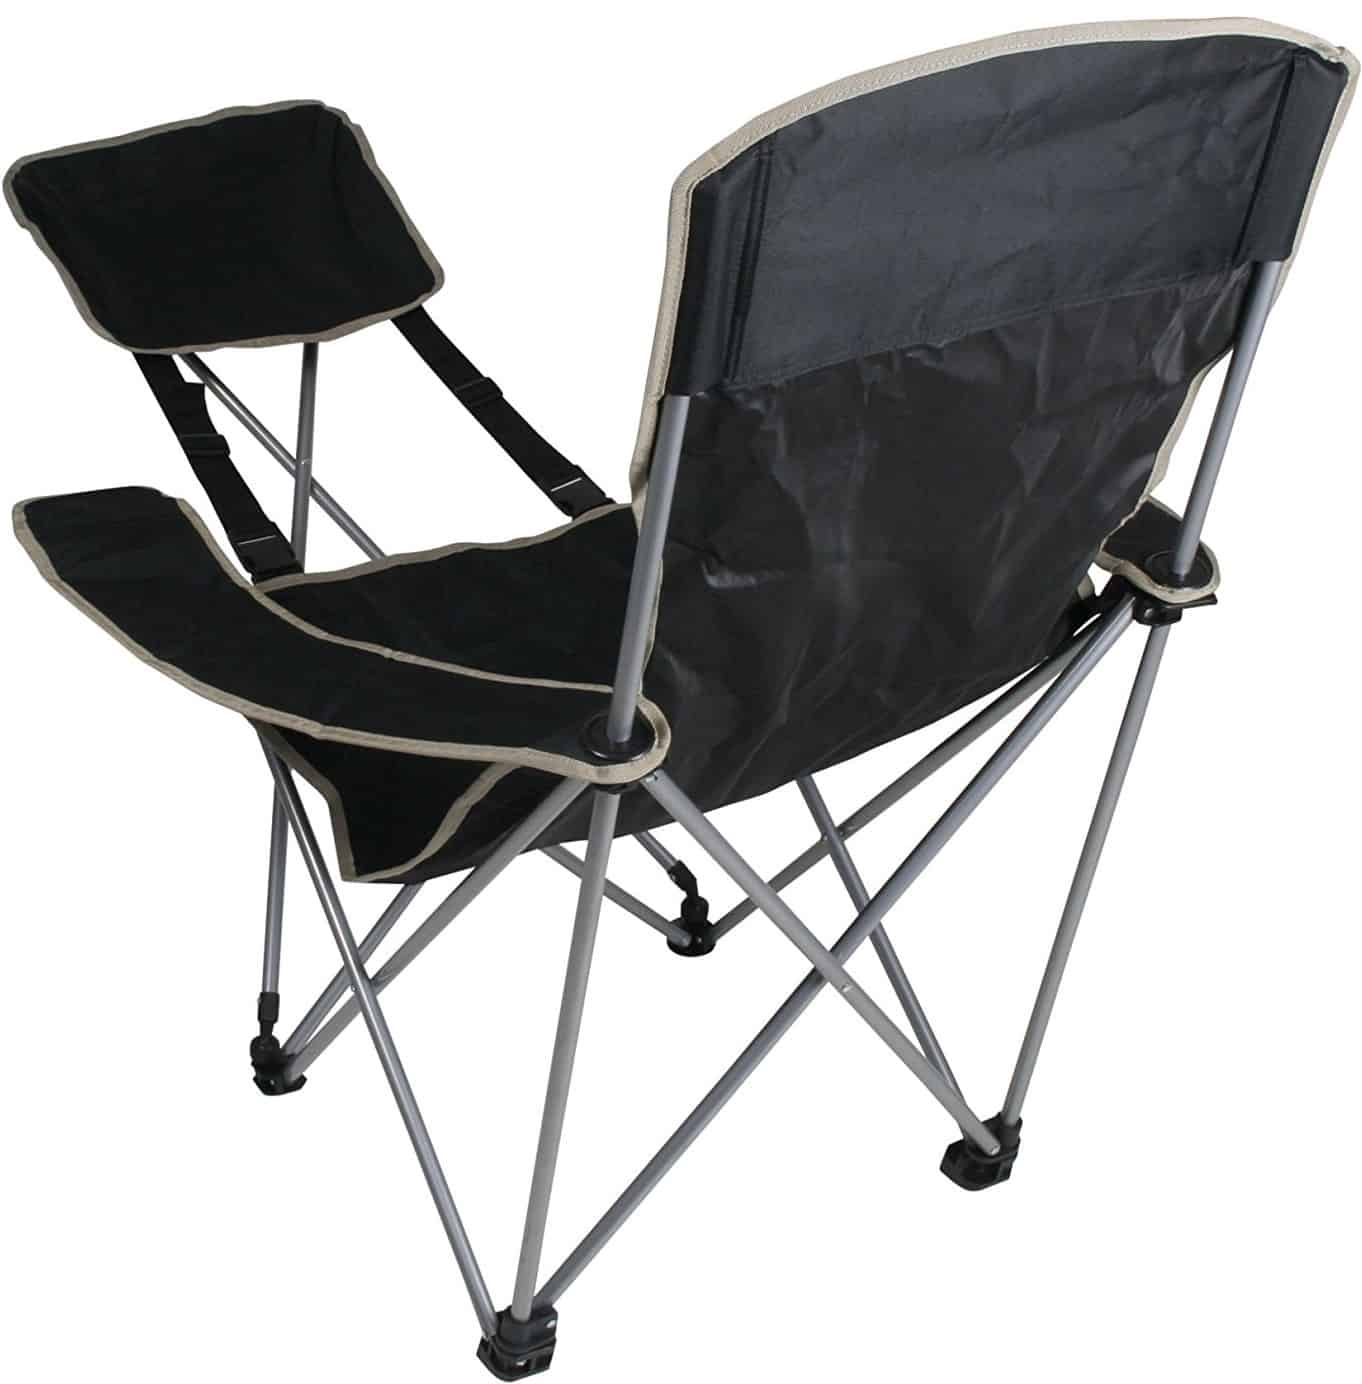 Best Camping Chair with Footrest – 10T Outdoor Equipment